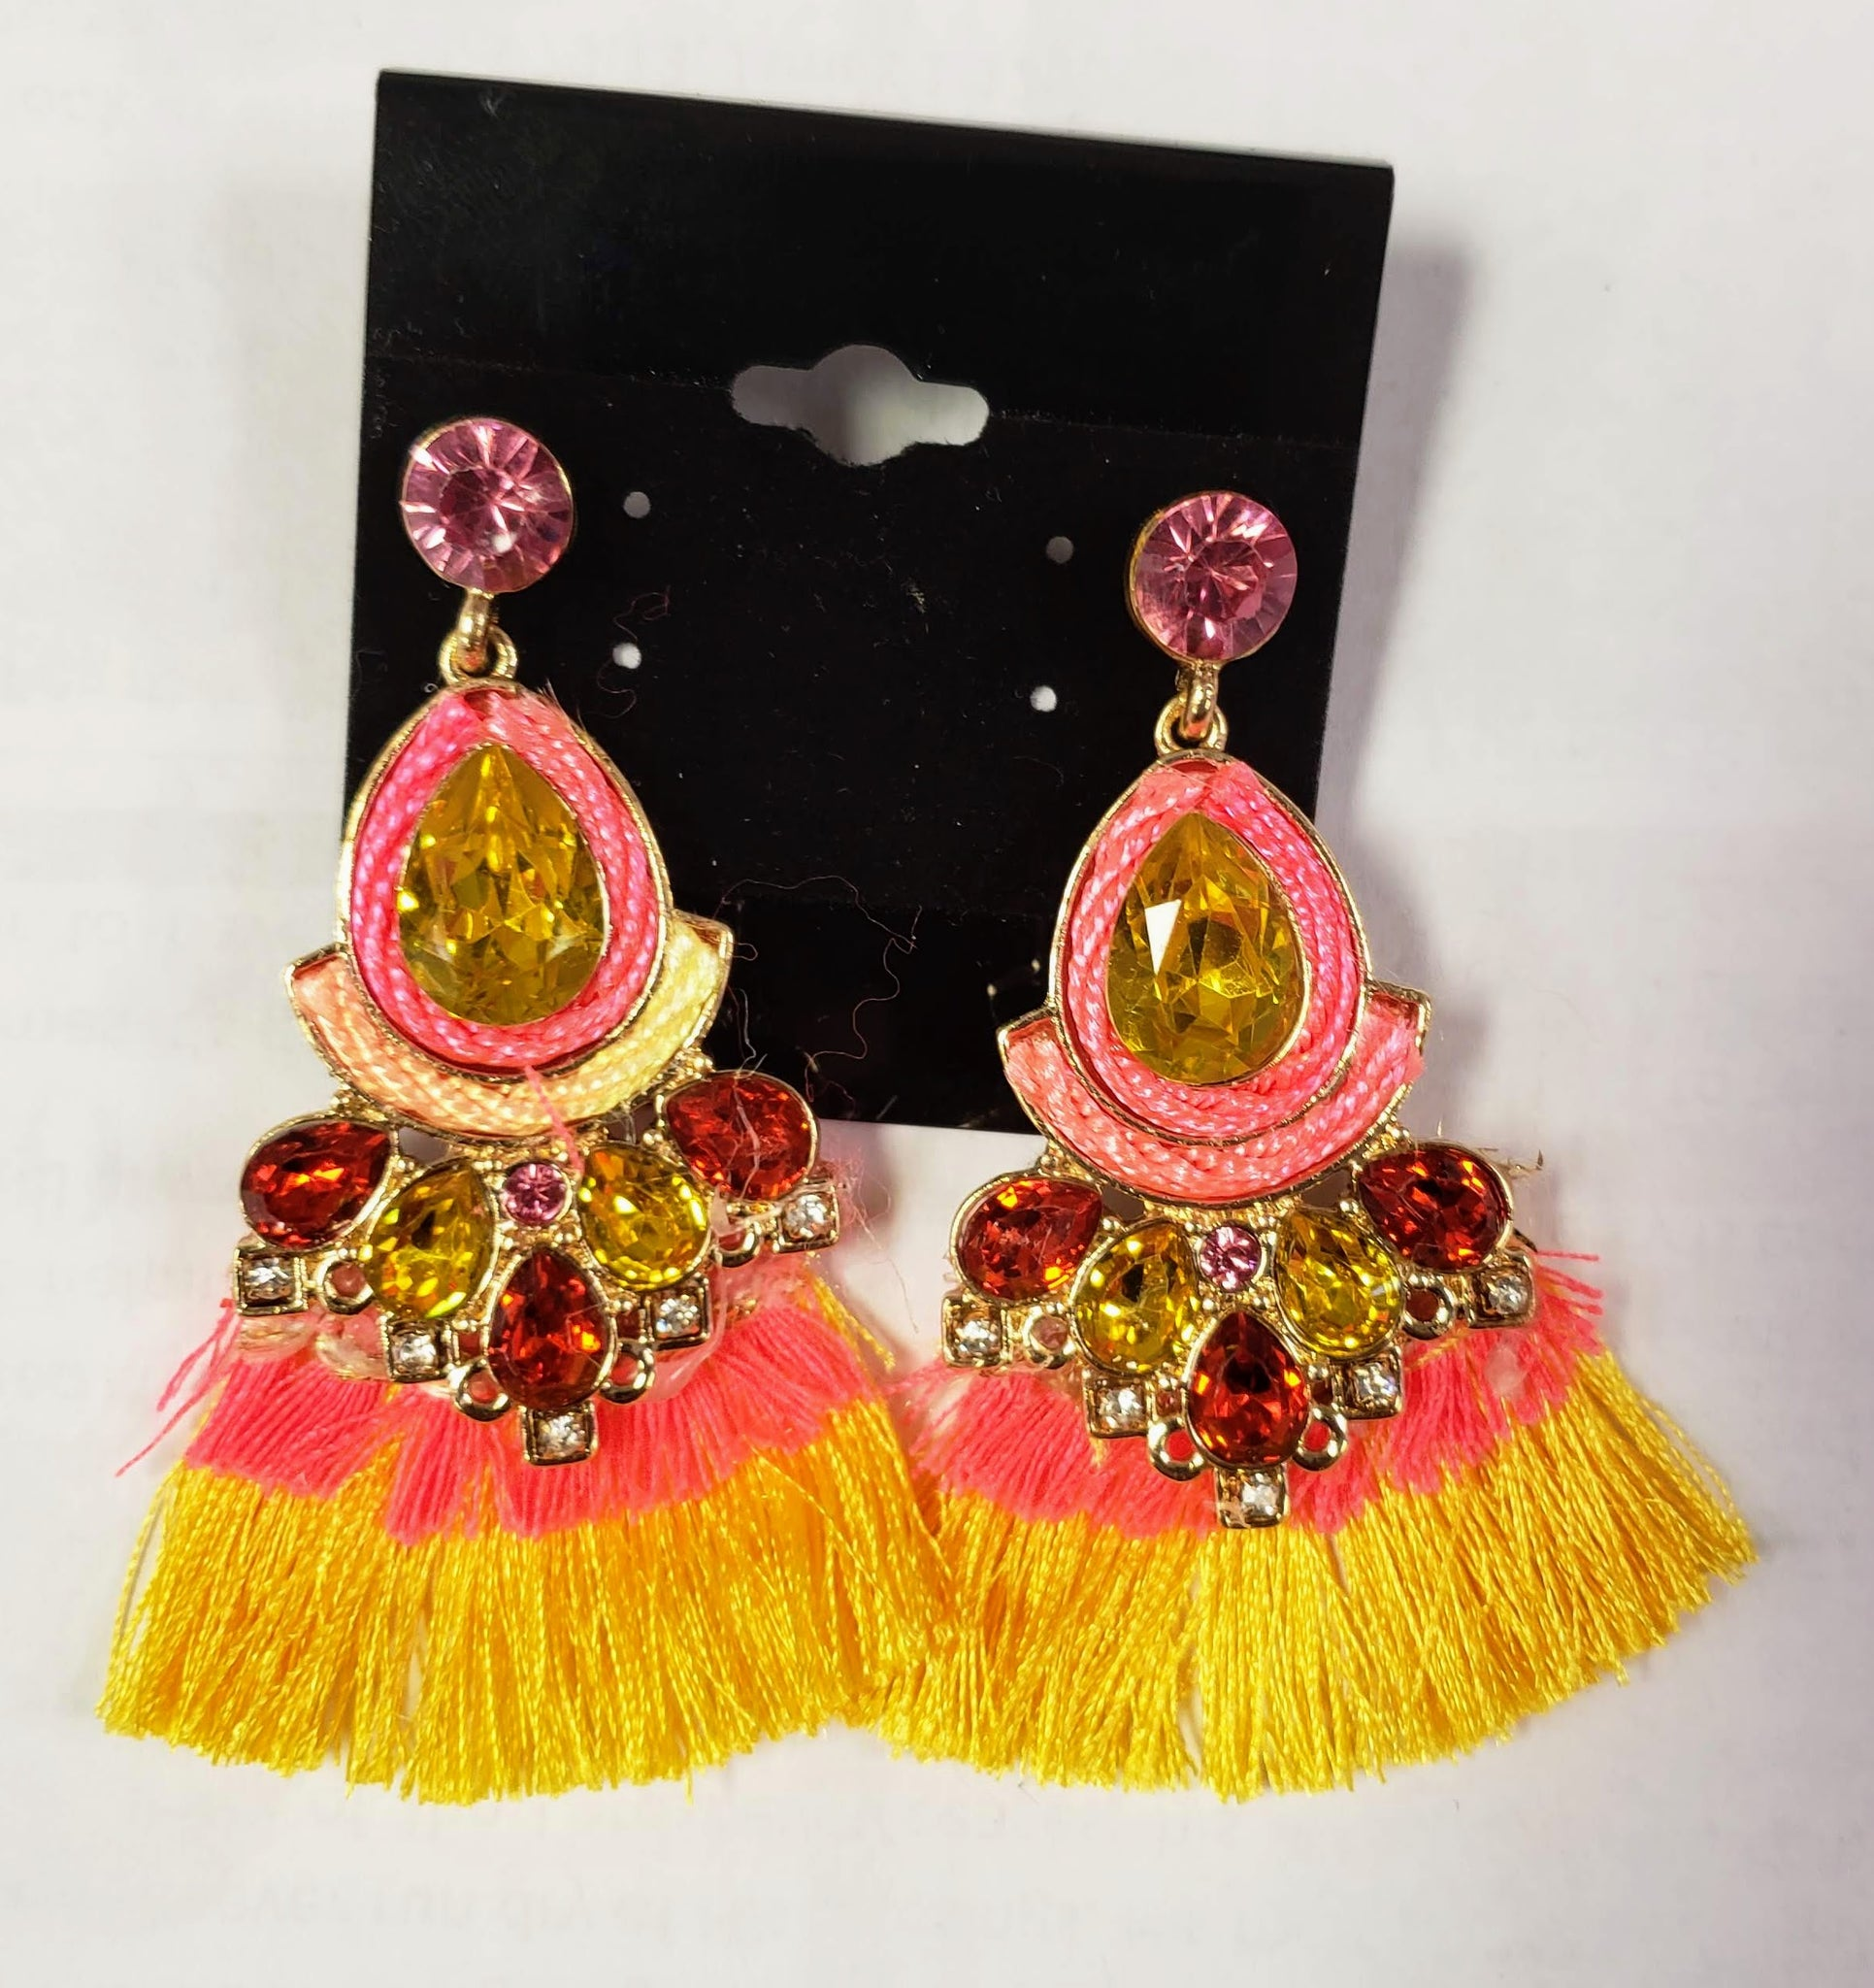 Tassell Earrings